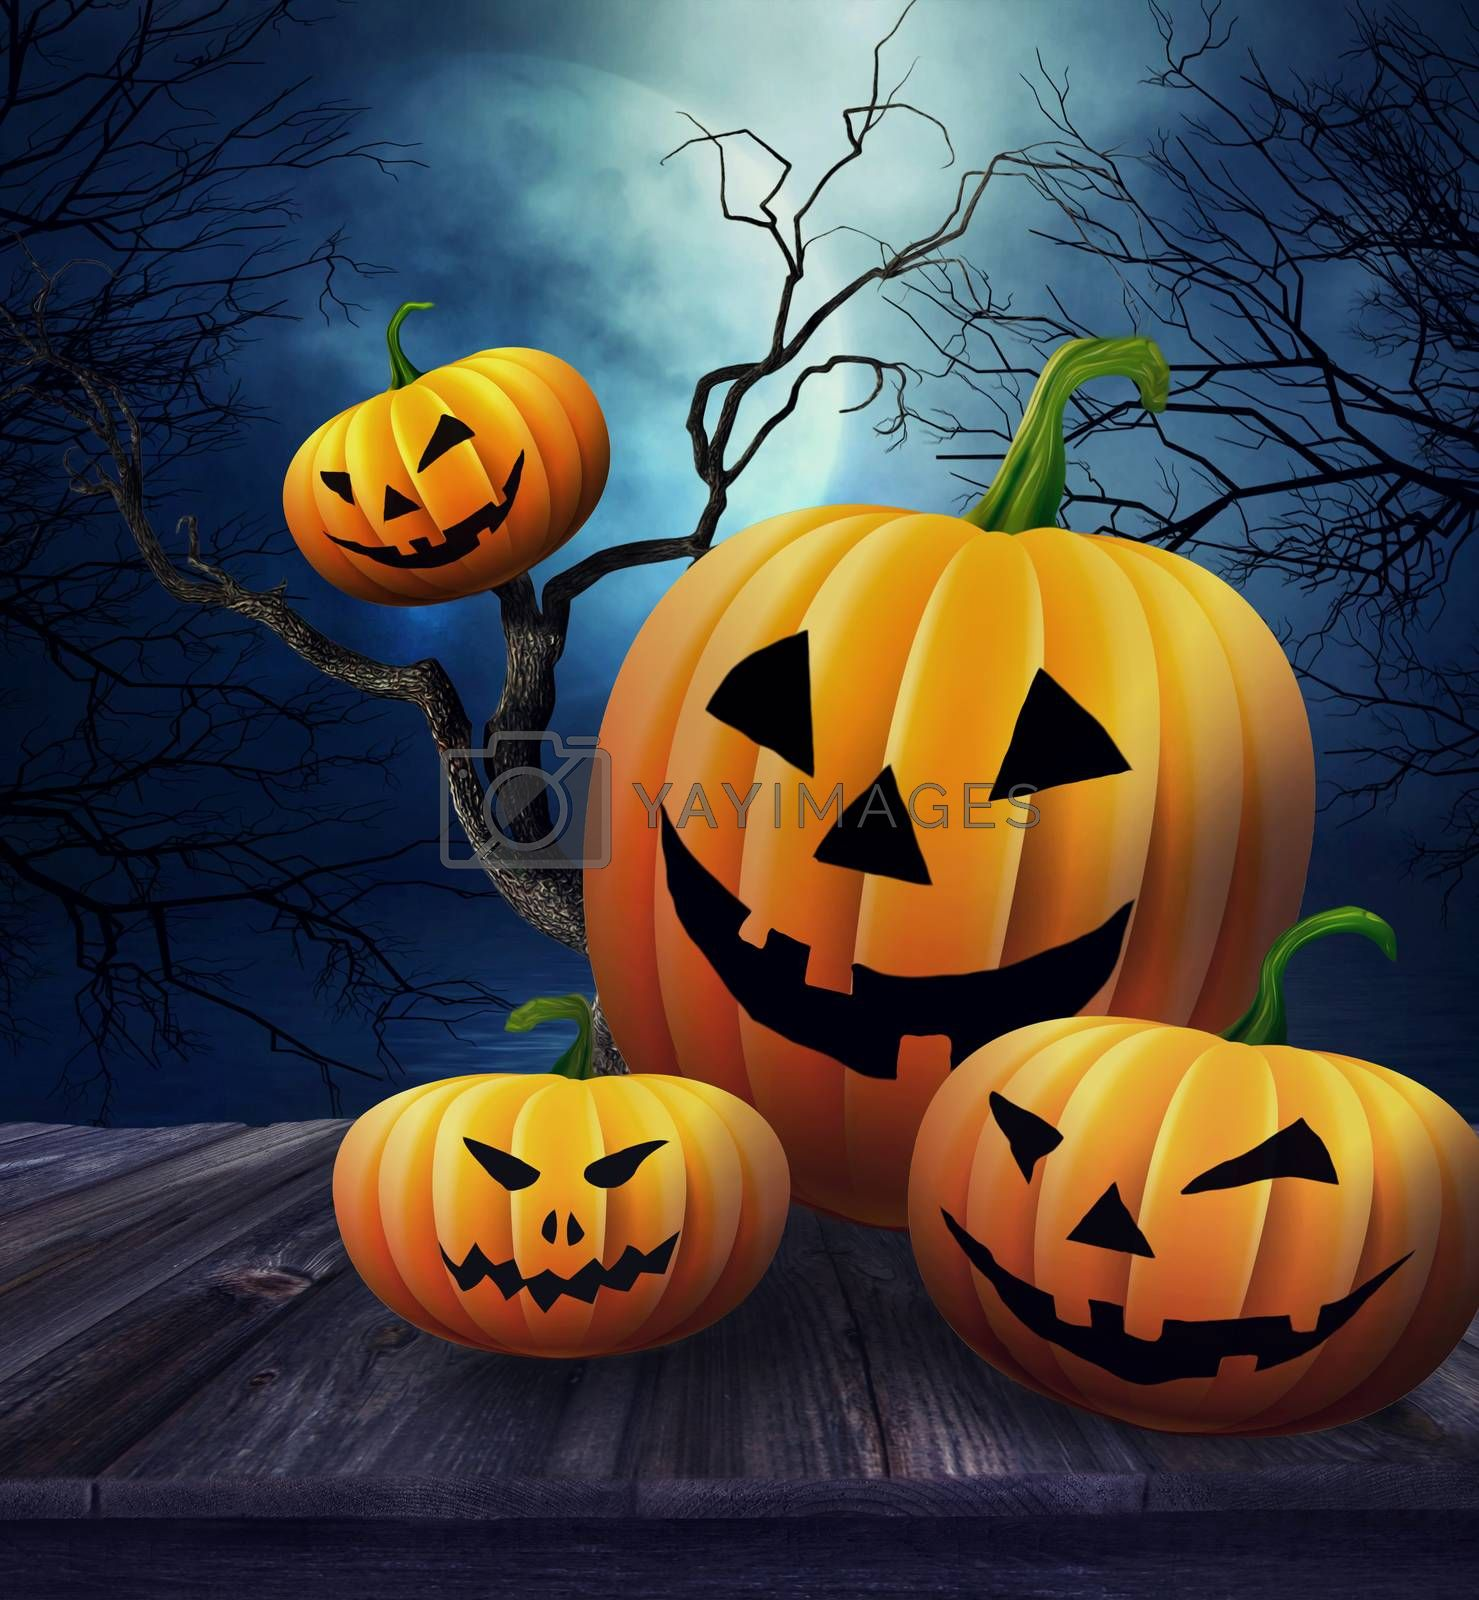 Pumpkins on wooden table  with Halloween background